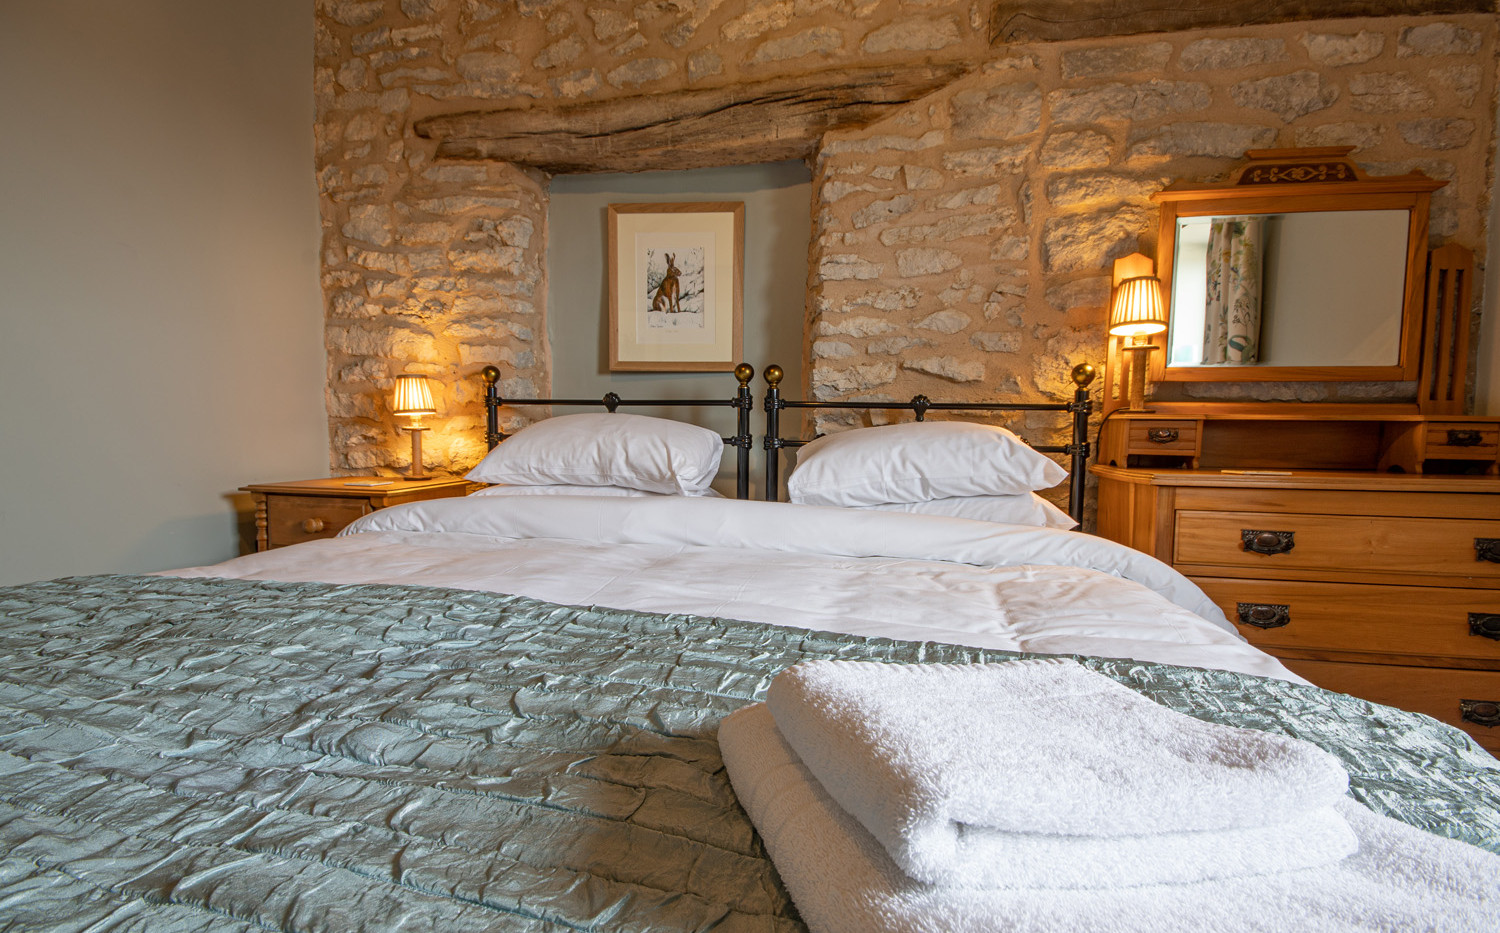 Master bedroom with feature stone walls and original beams